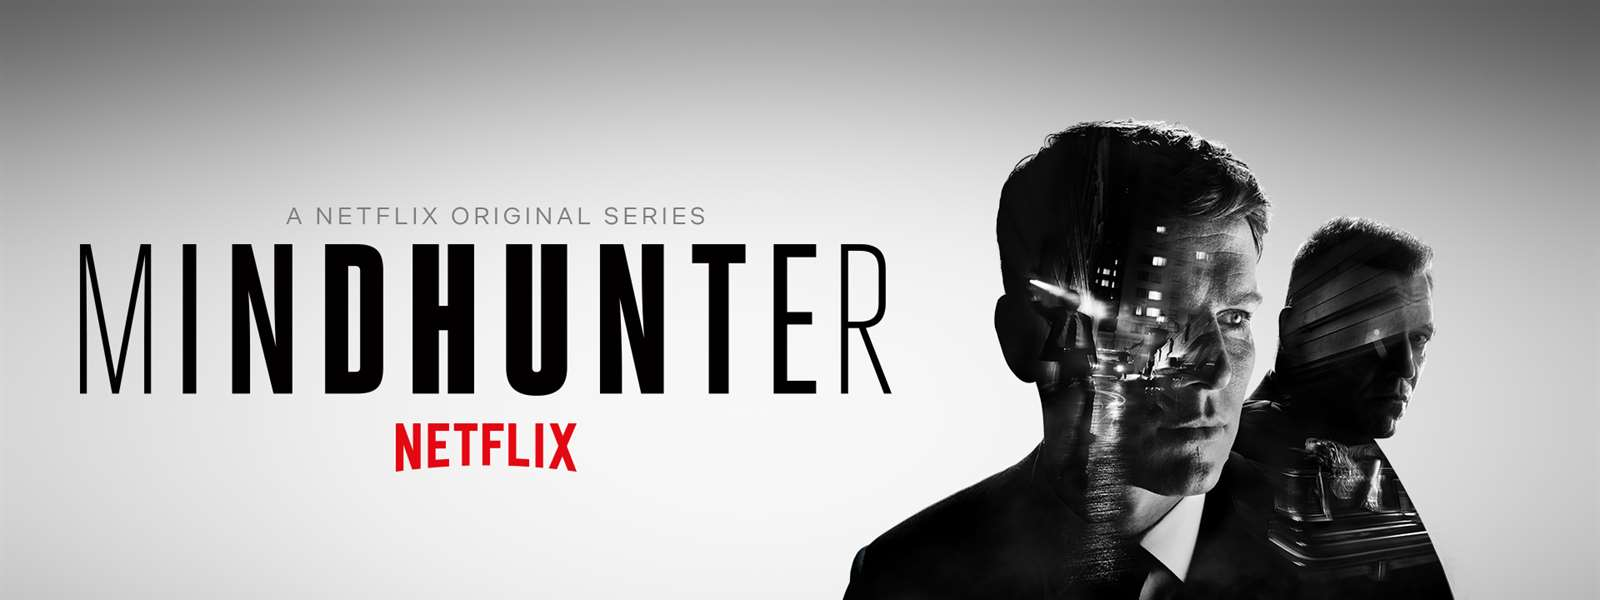 Mindhunter - As Virginia Dickinson on Season 2 of Netflix's Mindhunter.